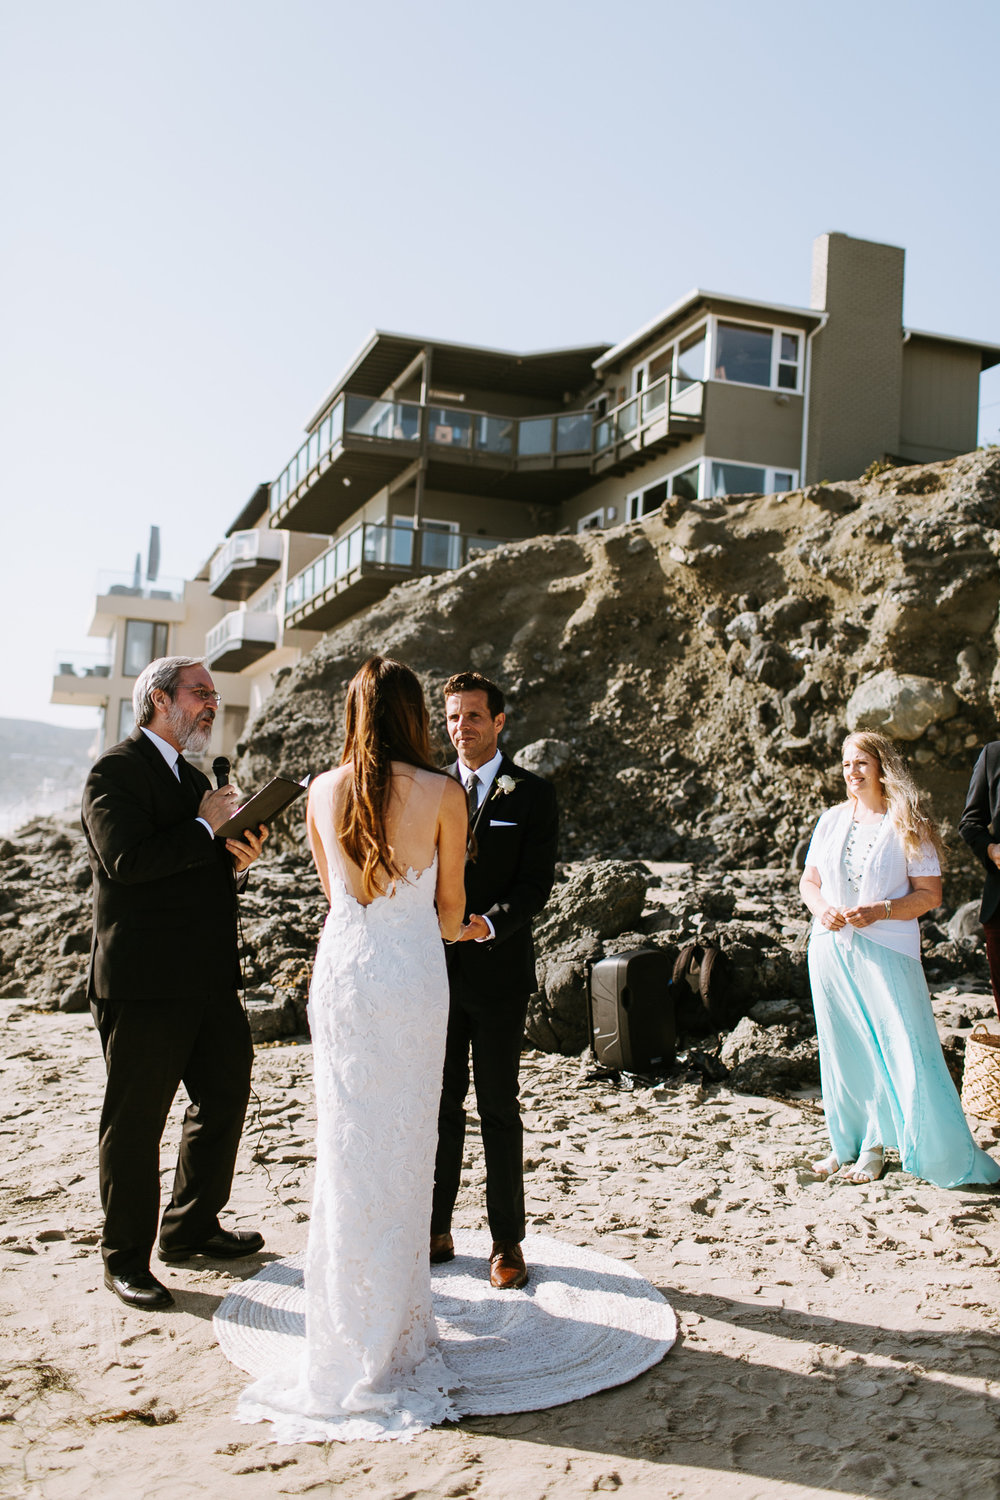 LagunaBeach-WeddingPhotographer-32.jpg